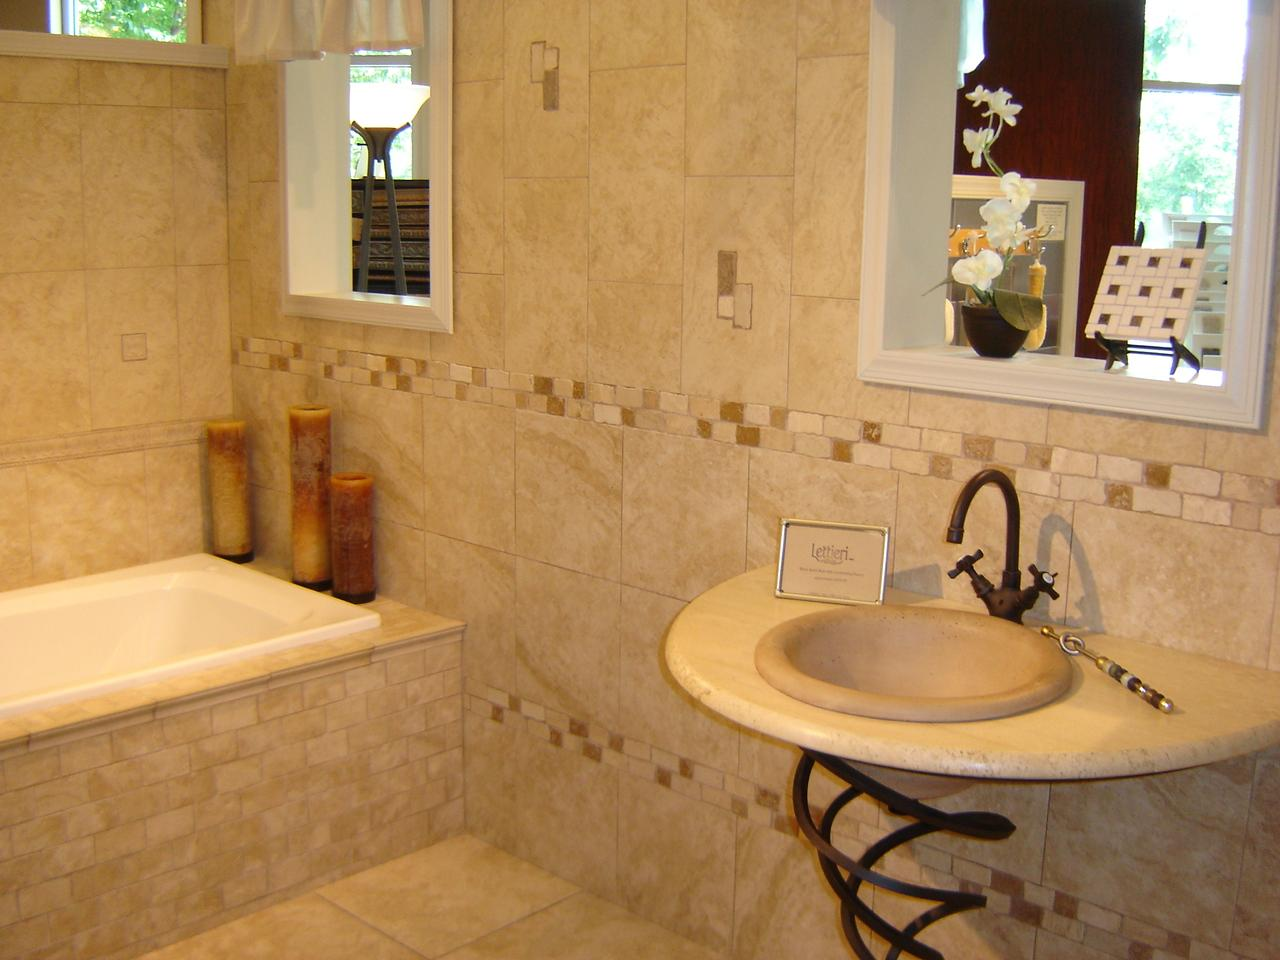 Bathroom tile design ideas for Bath tiles design ideas